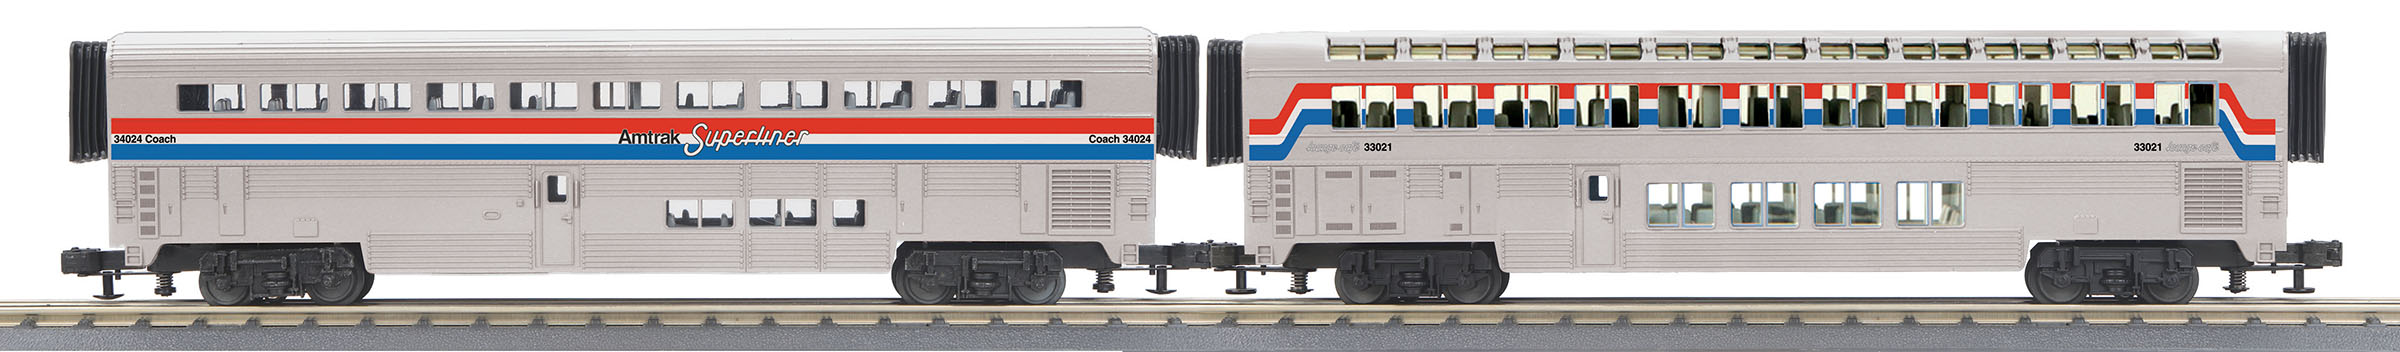 MTH 306536 O-31 SuperLiner Set, Amtrak/Phase III #4019 (2) MTH306536